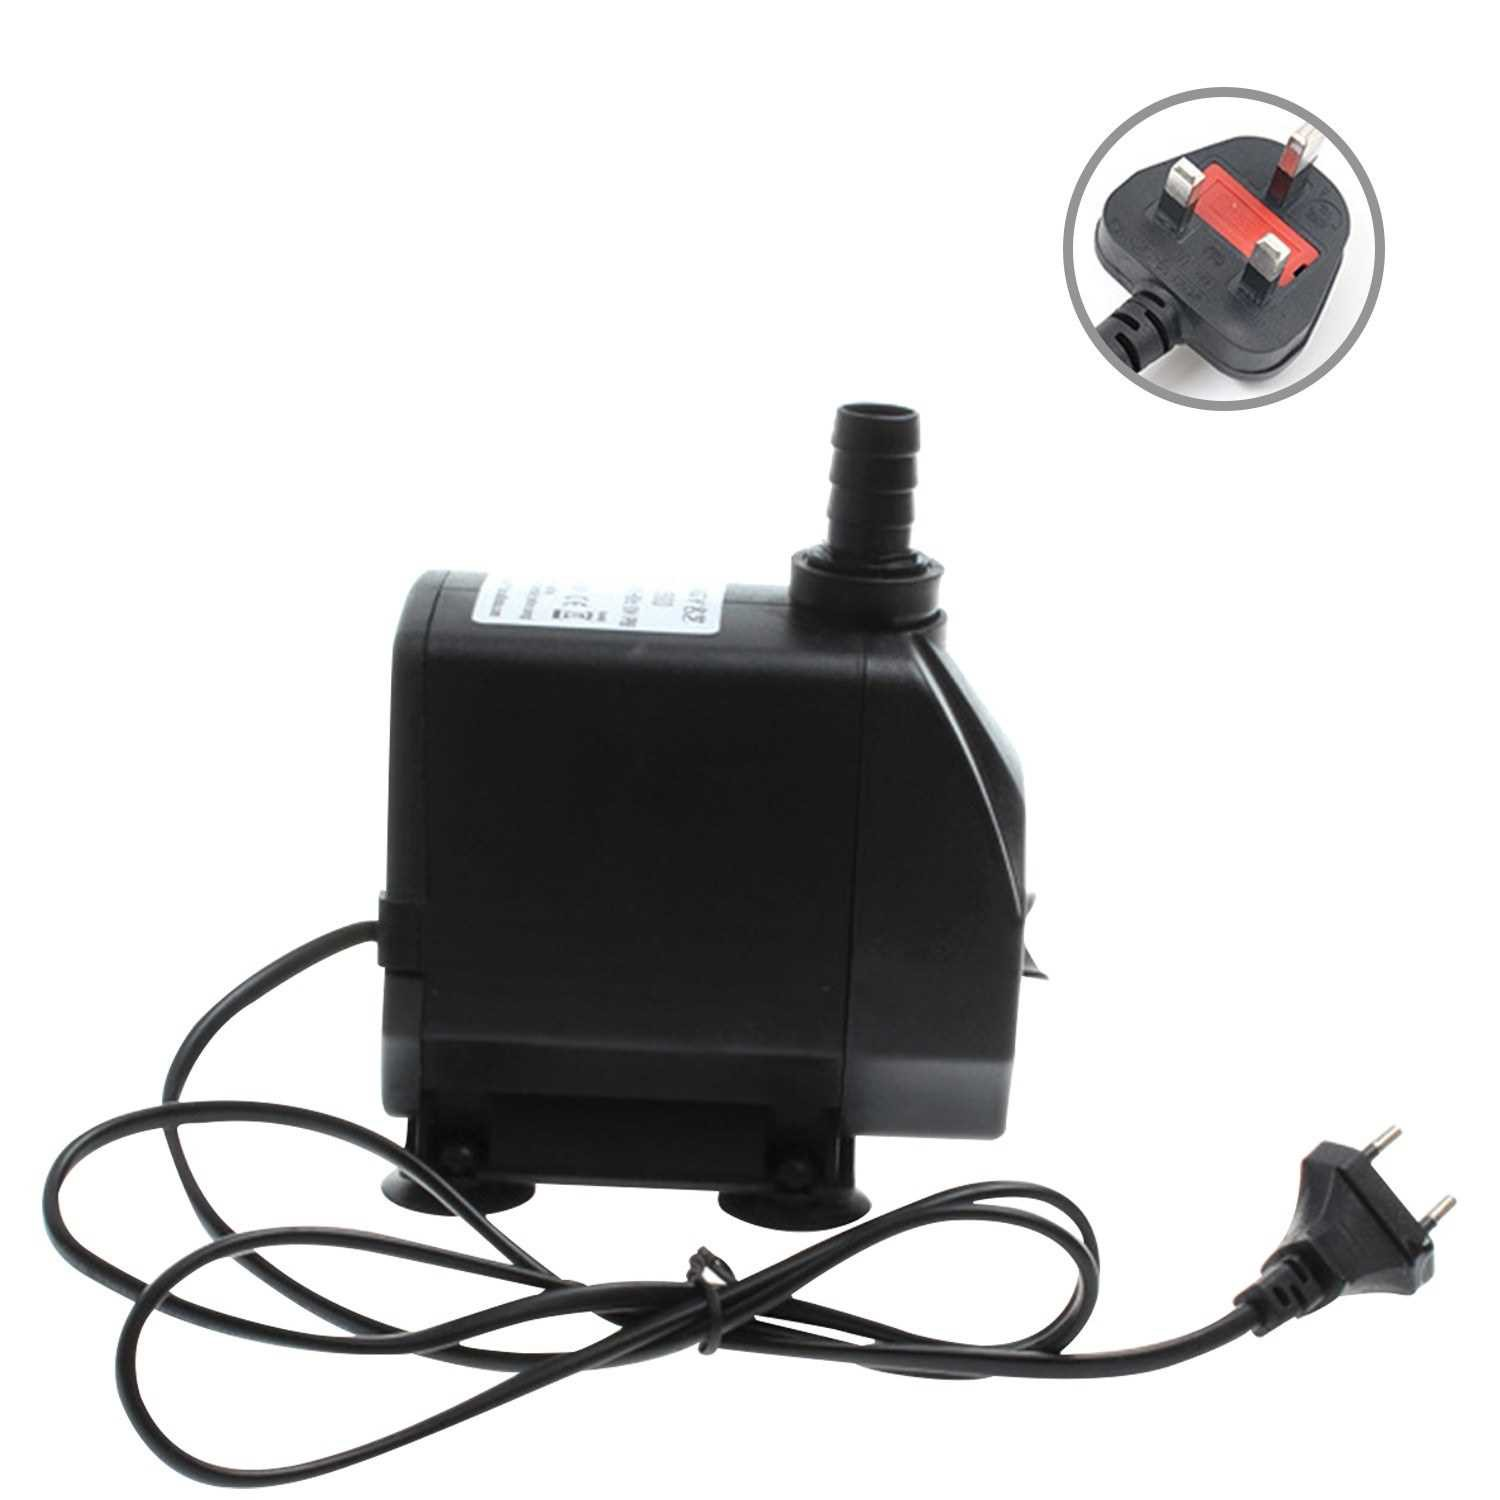 60W 3500L/H Submersible Water Pump with 11ft High Lift Mini Fountain Pump Ultra Quiet Water Pump for Aquarium Fish Tank